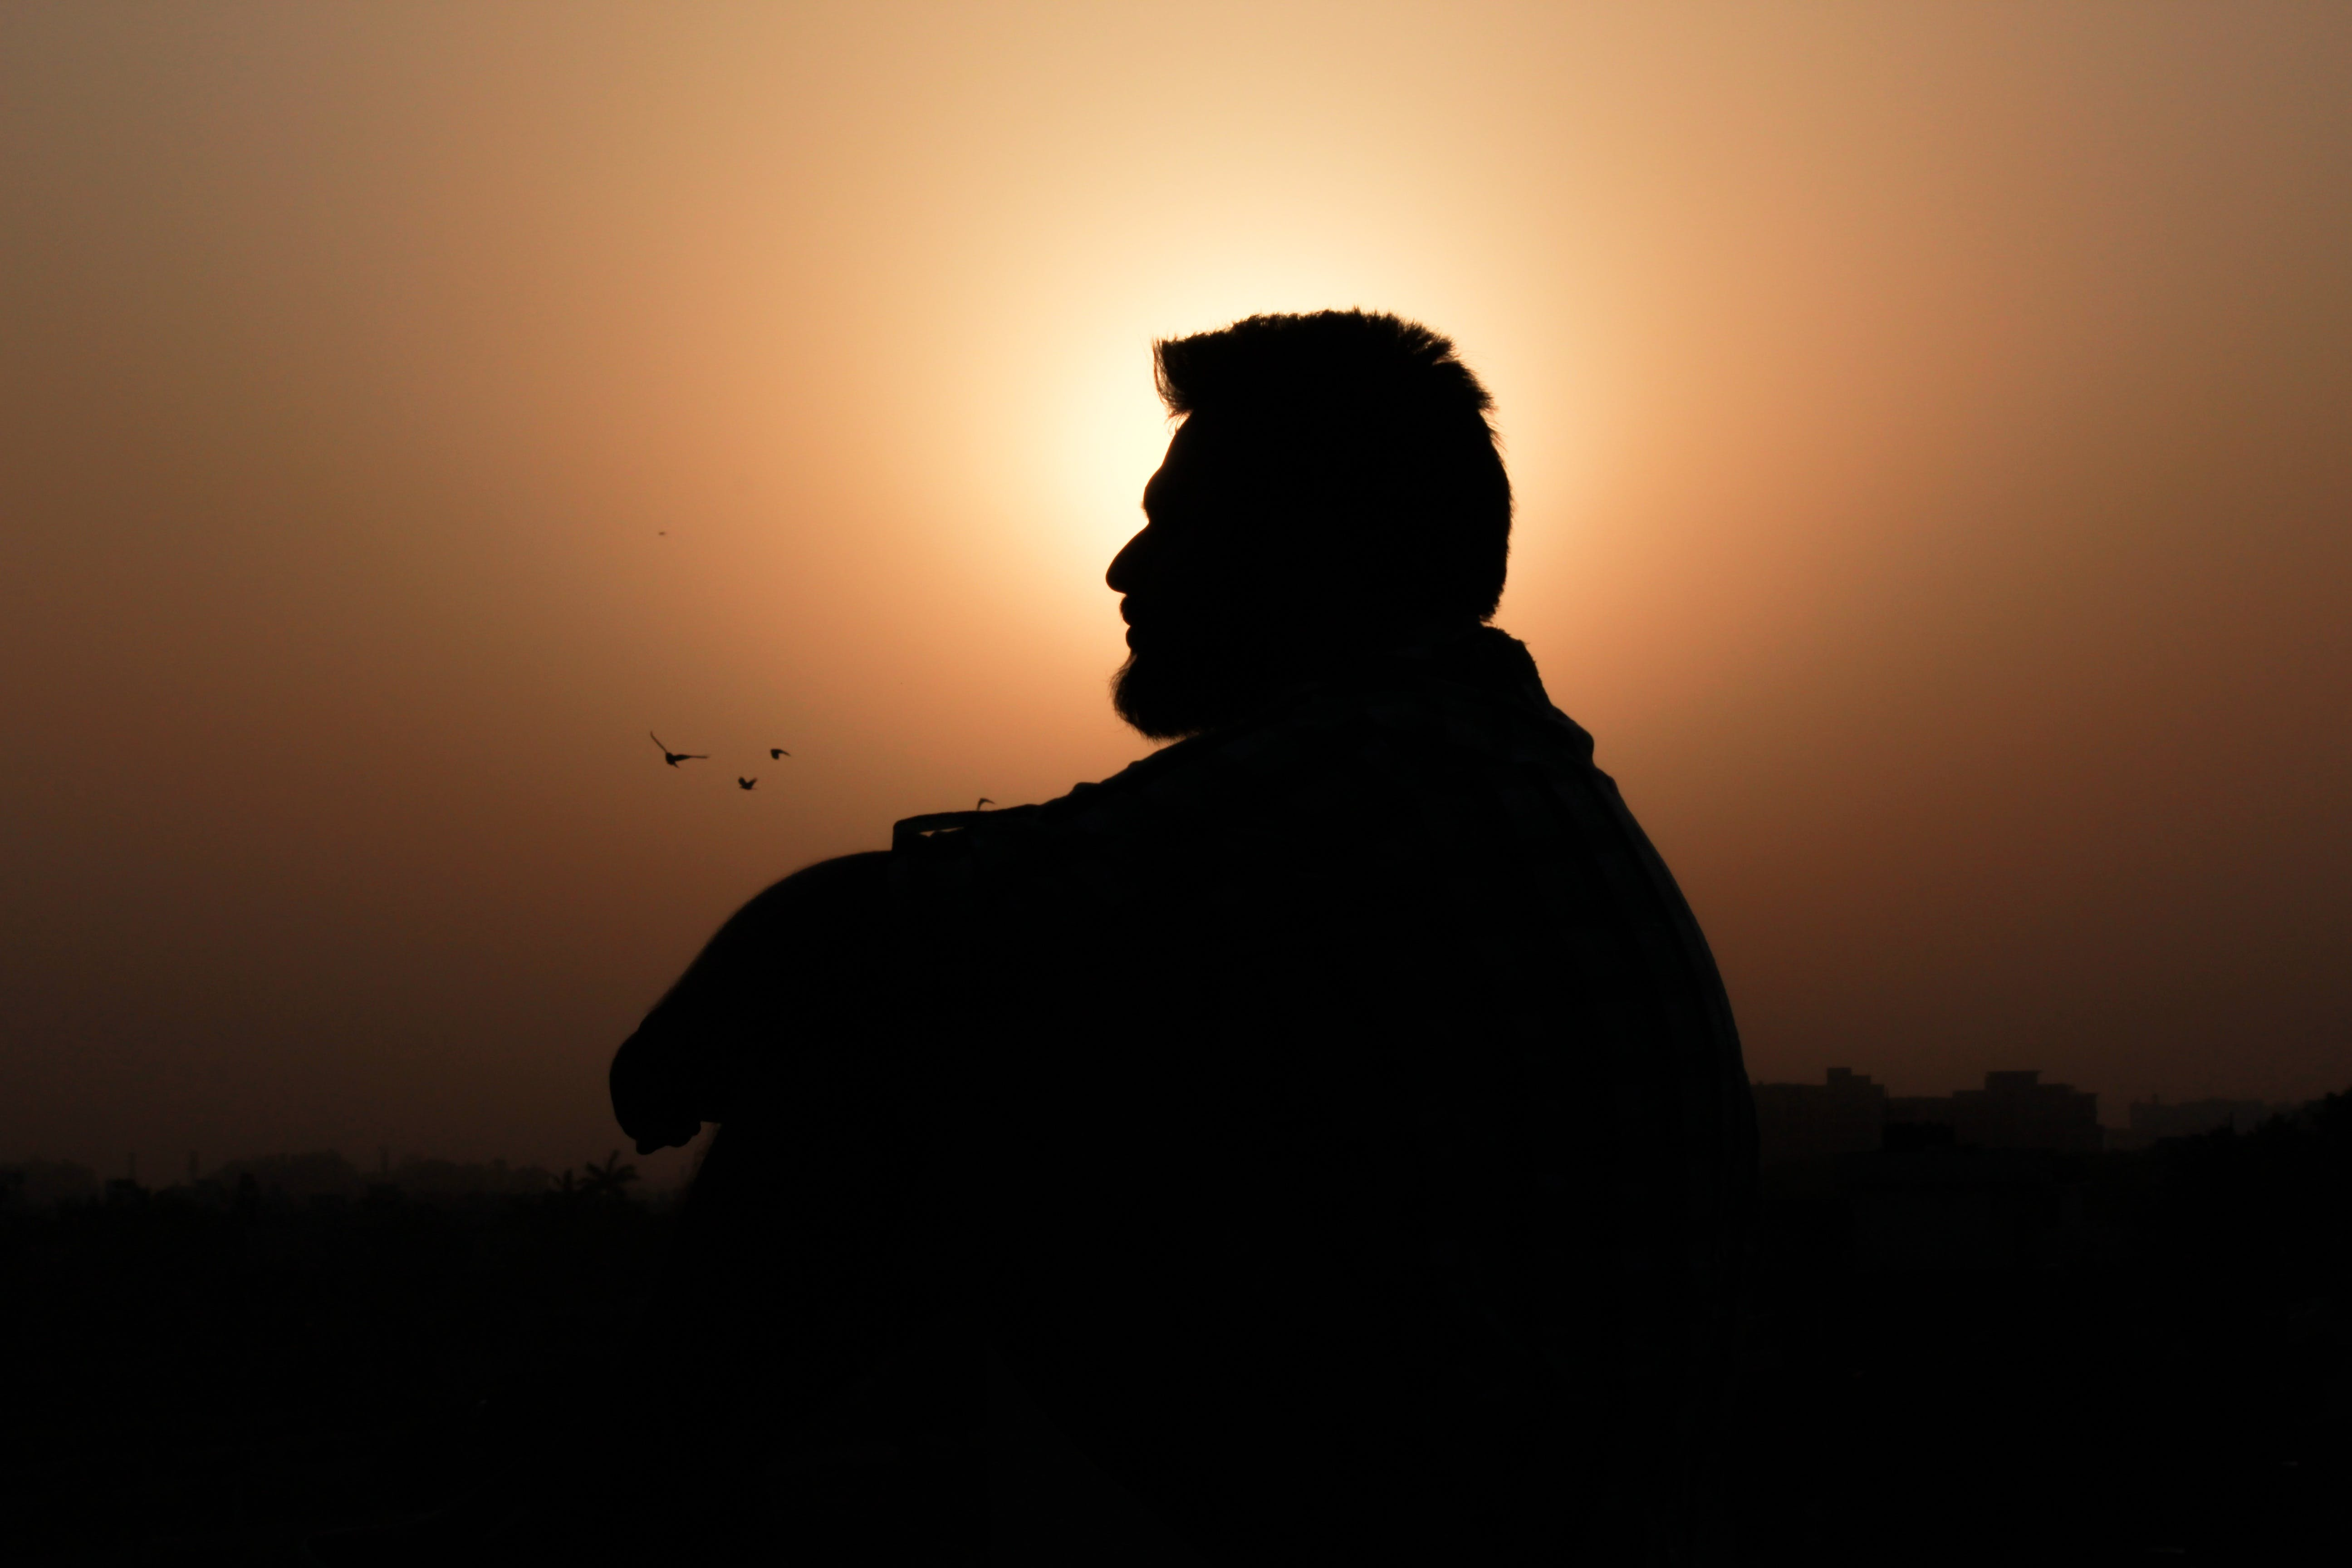 Silhouette of Sunset Sitting Man